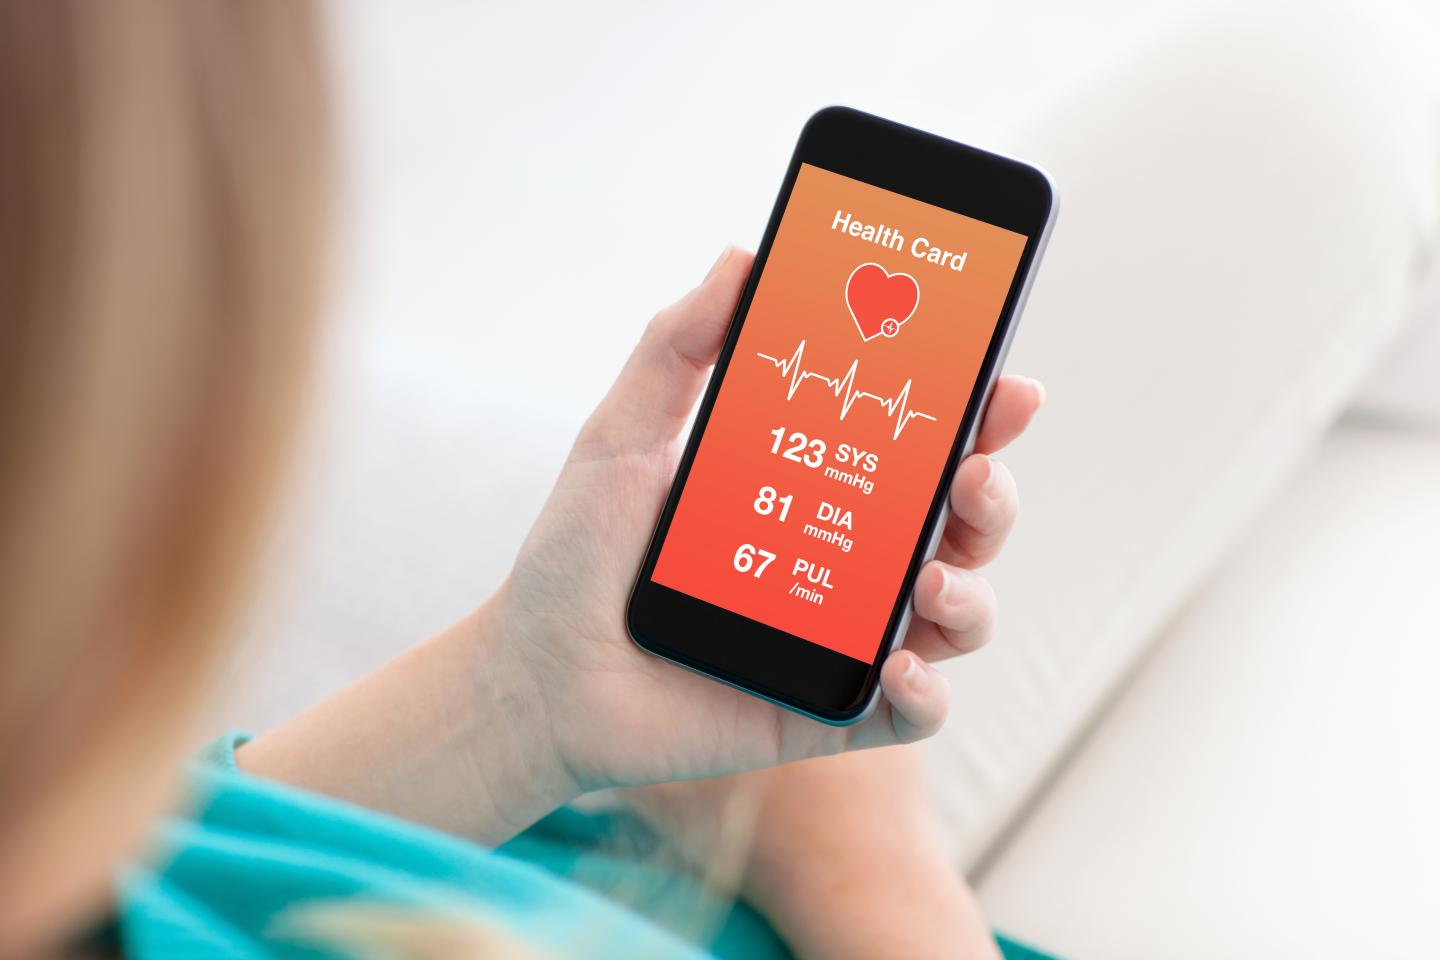 Using an app for health monitoring